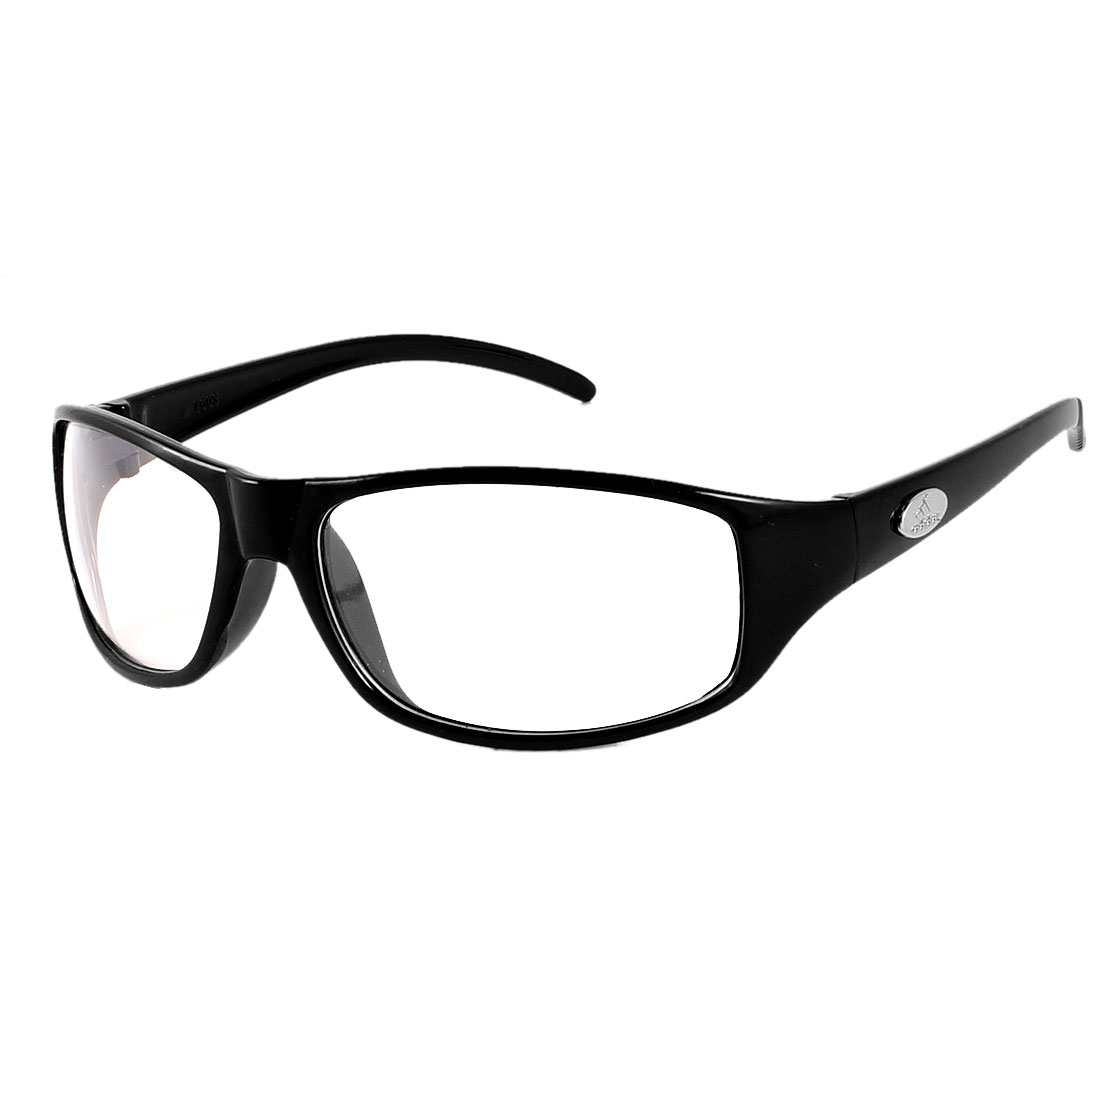 Black Arm Full Frame Single Brige Clear Lens Plain Glasses for Unisex